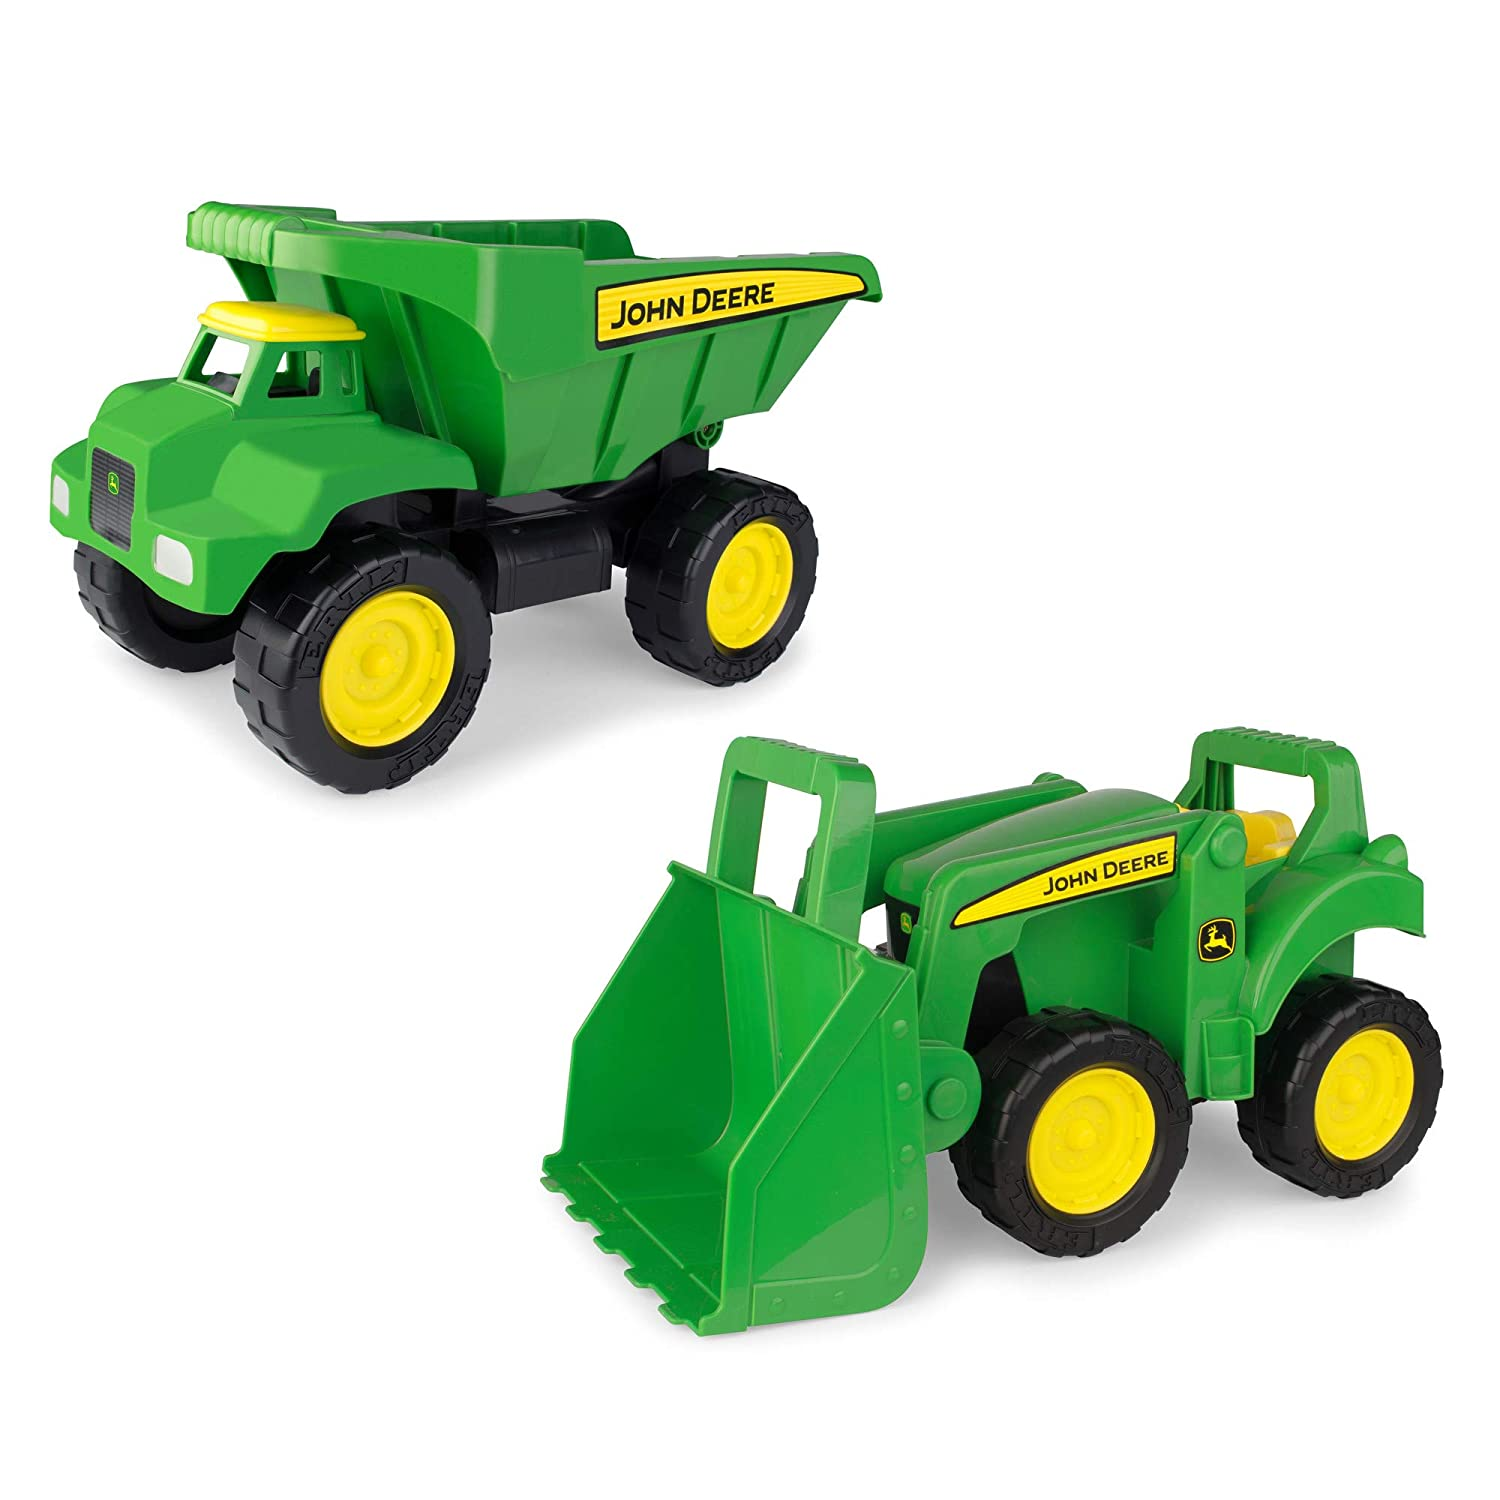 John Deere 46777 Big Scoop Dump Truck and Tractor with Loader Toy Green//Yellow TOMY 46777V